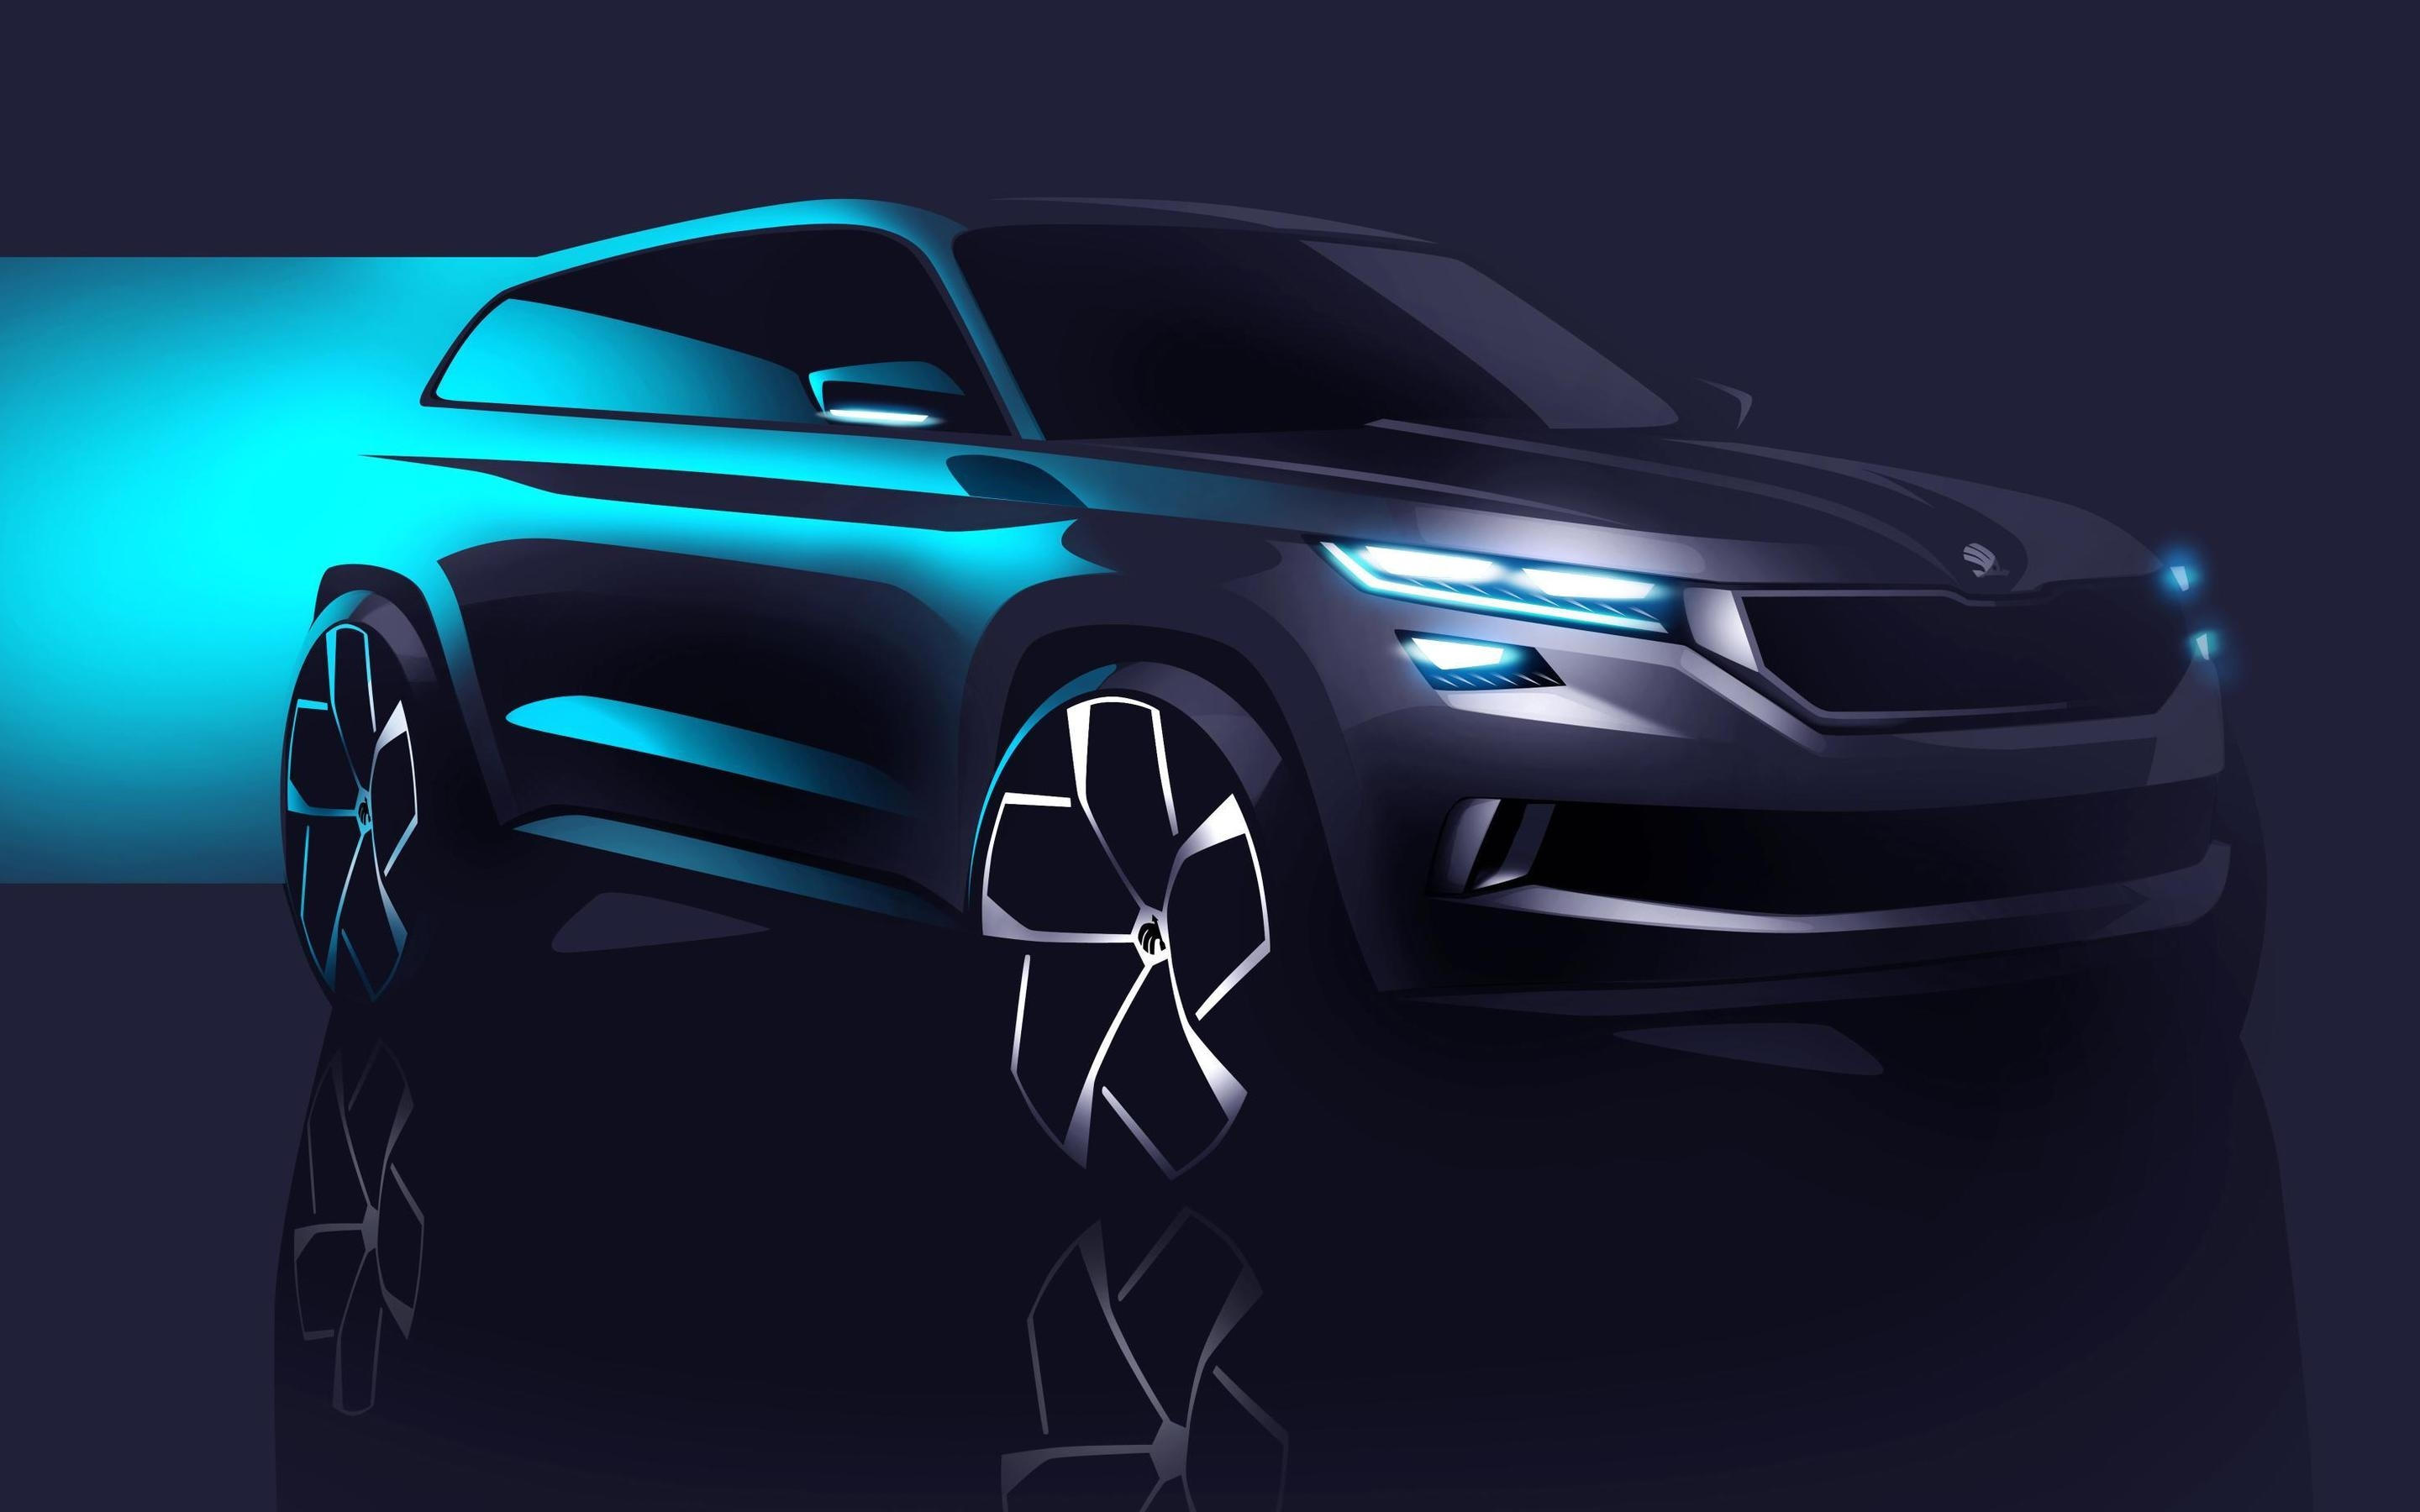 2016 Skoda Visions Concept for 2880 x 1800 Retina Display resolution